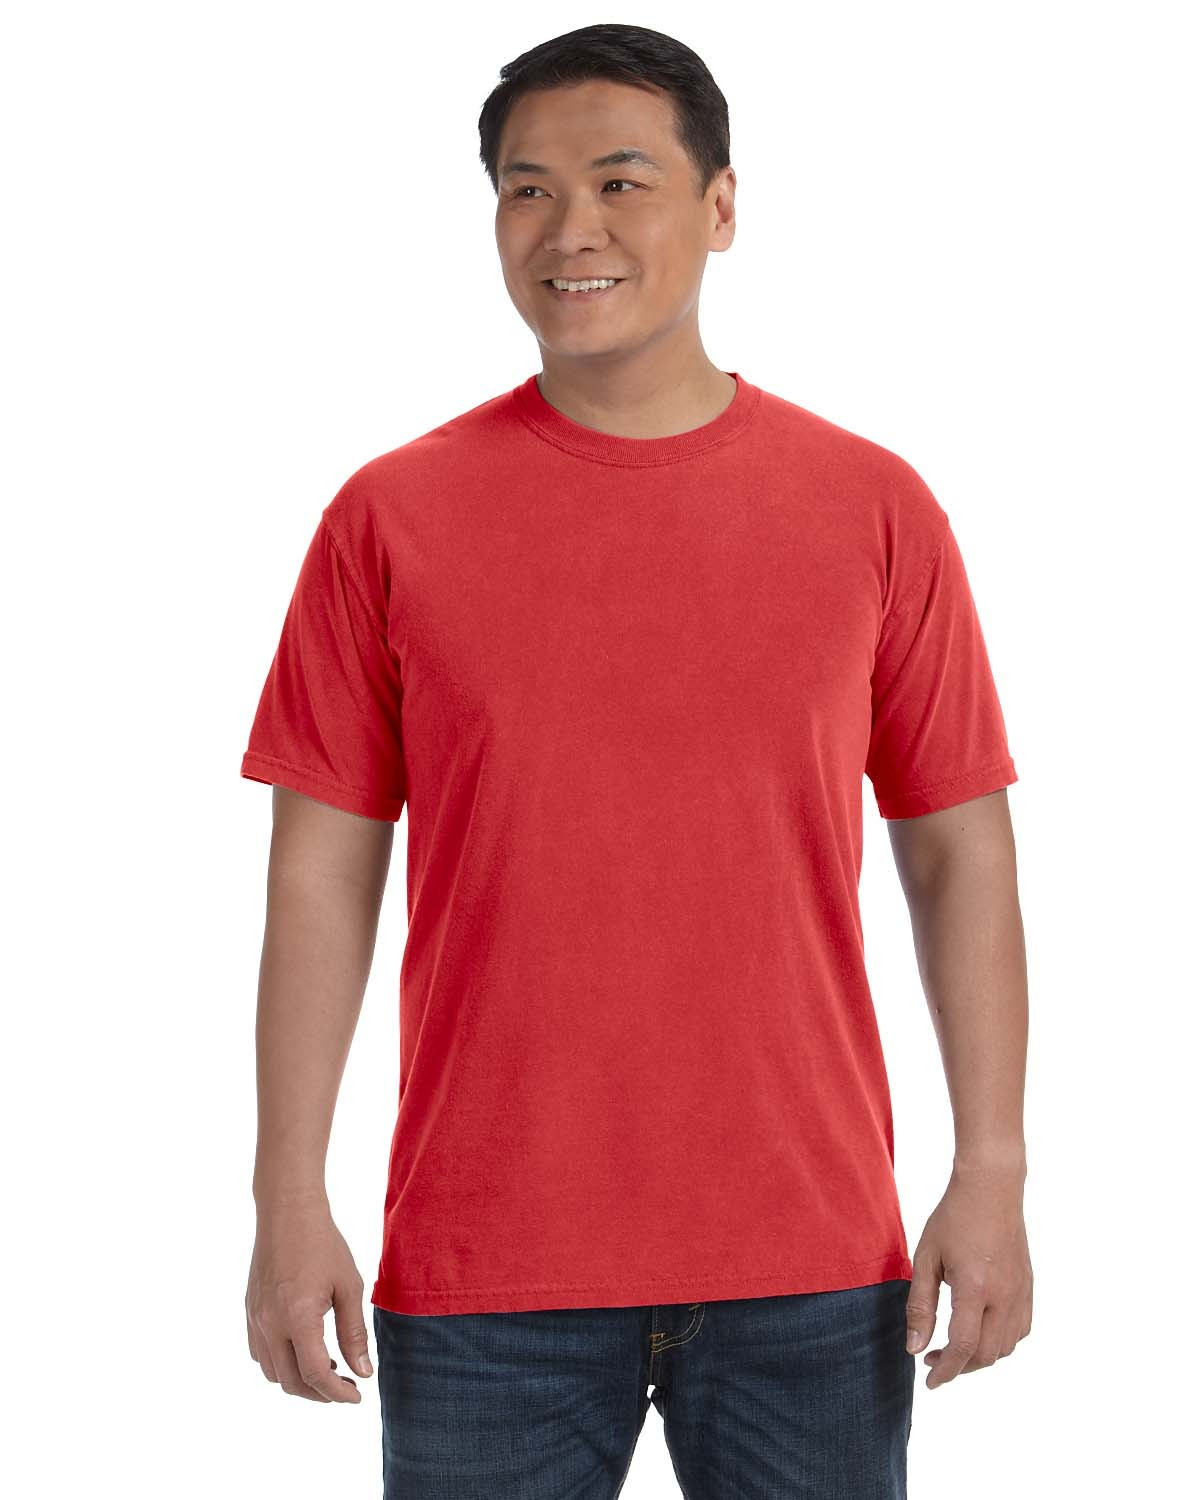 C1717 Comfort Colors RED